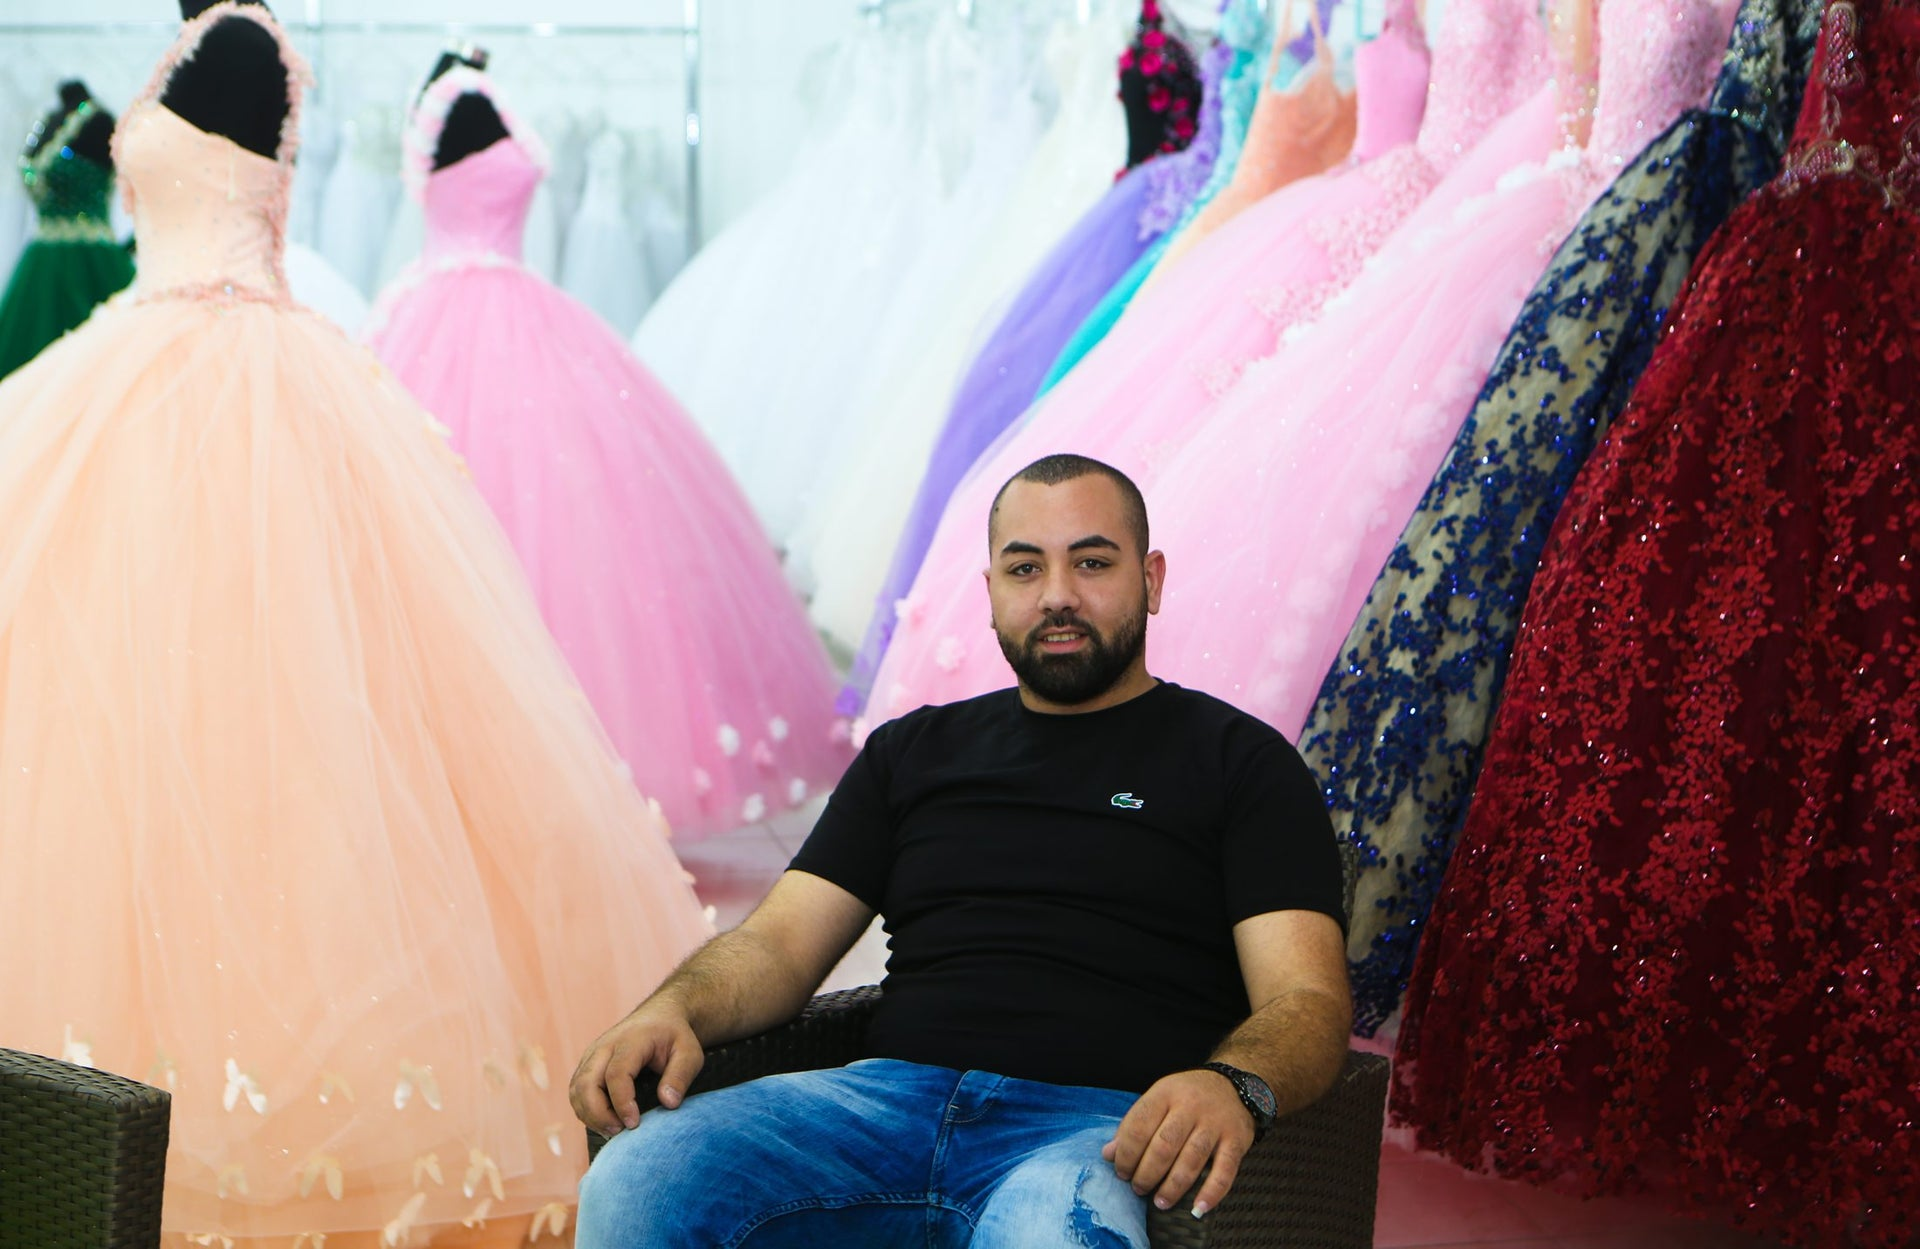 Shadi Hamdan at his family's gown and lingerie shop in eastern Barta'a, June 2017.